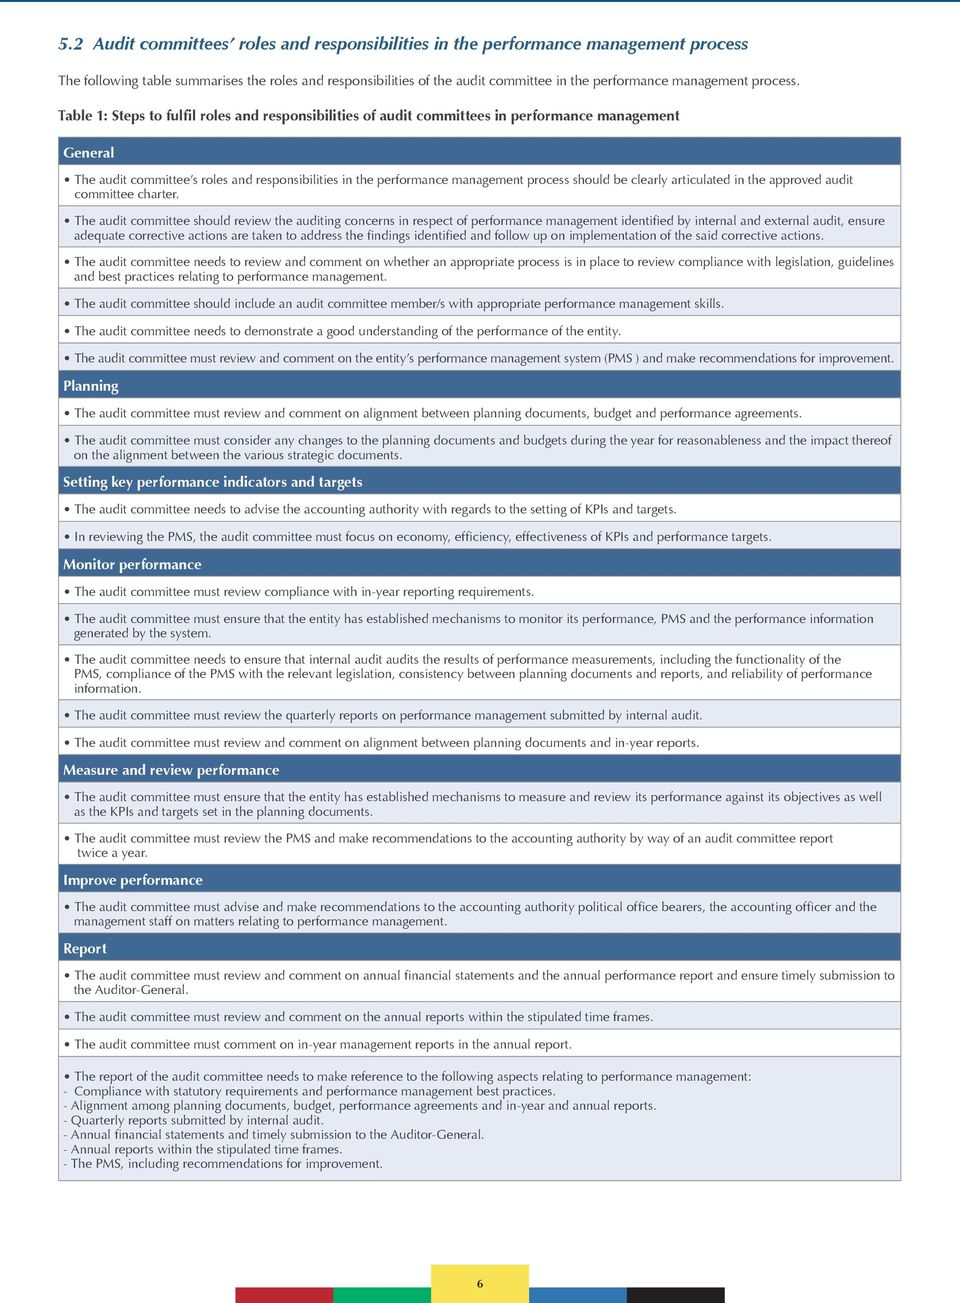 Table 1: Steps to fulfil roles and responsibilities of audit committees in performance management General The audit committee s roles and responsibilities in the performance management process should